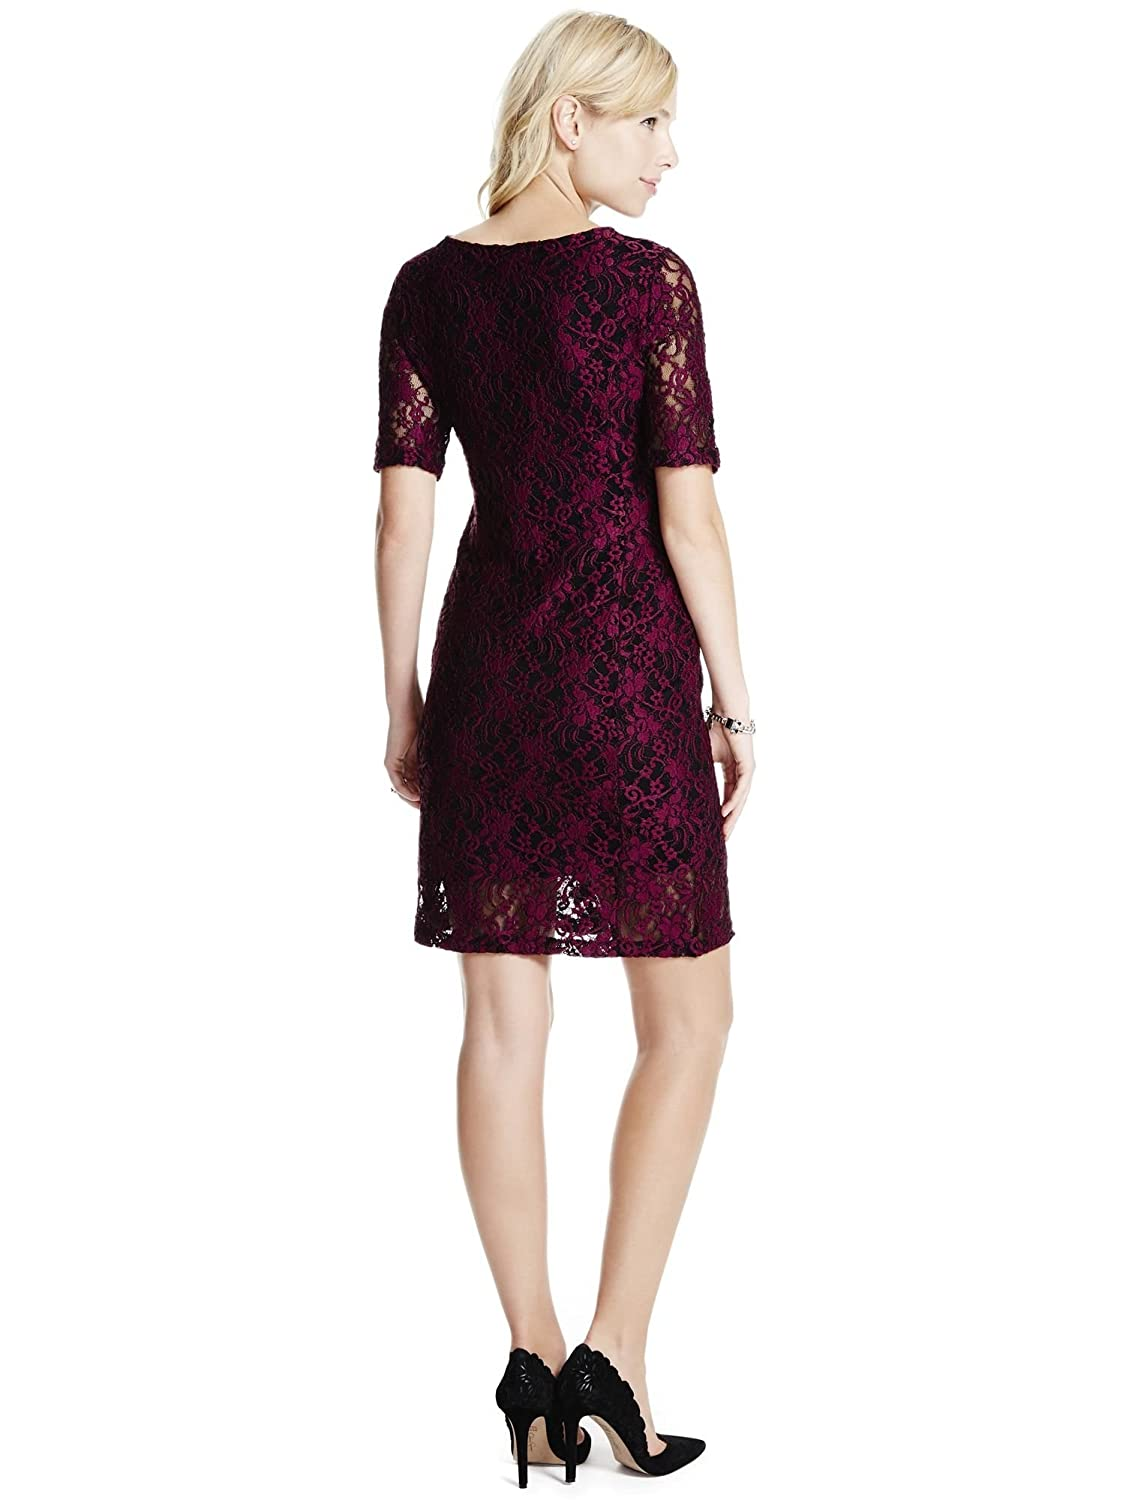 Jessica simpson lace maternity dress at amazon womens clothing store ombrellifo Gallery